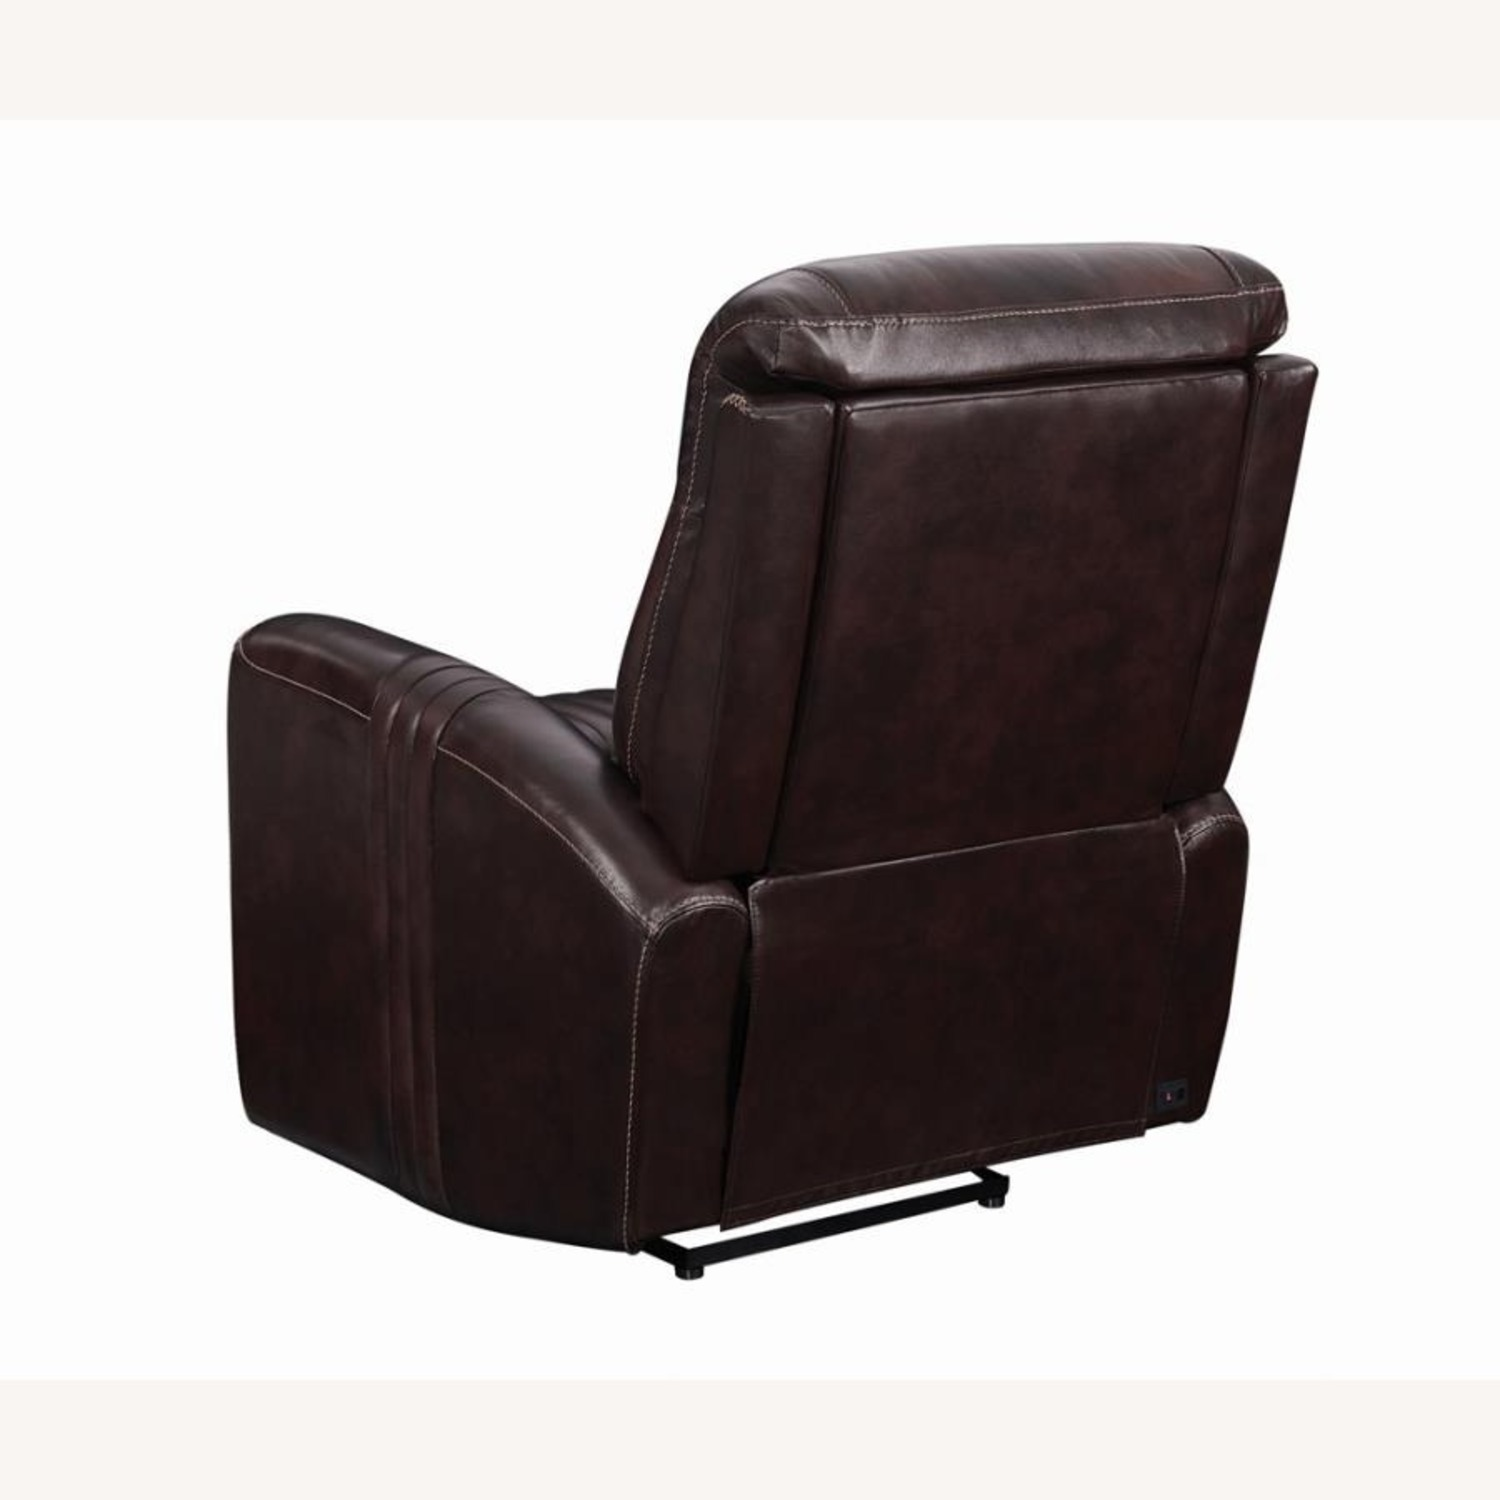 Modern Power Recliner In Brown Top Grain Leather - image-4